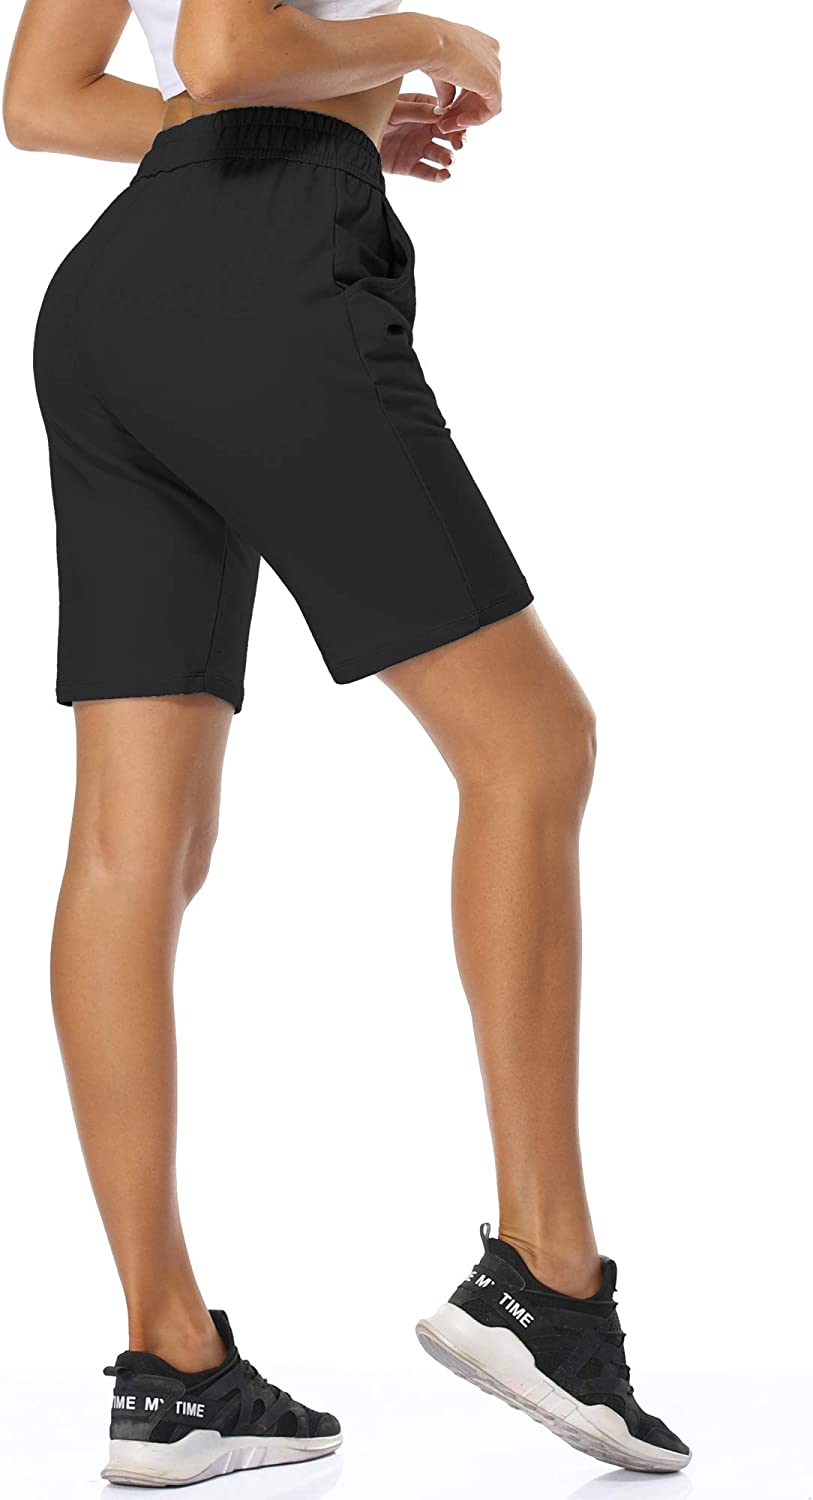 Cadmus Womens Casual Jersey Shorts Lounge Walking Shorts with Pockets Activewear